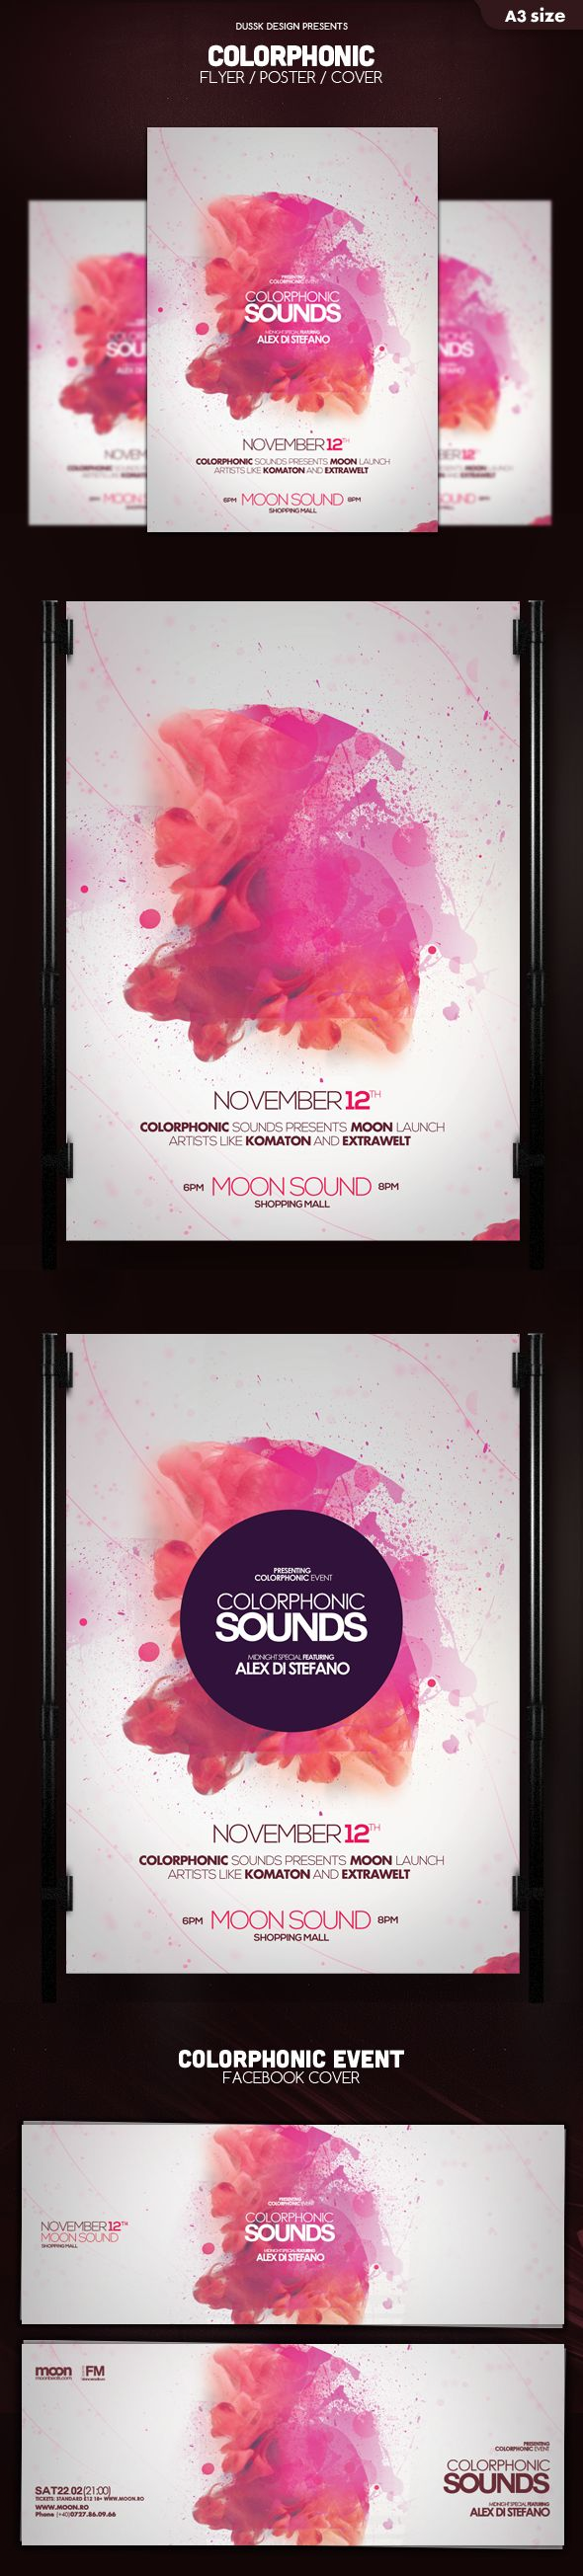 Colorphonic Poster Flyer by Iulian Balinisteanu, via Behance